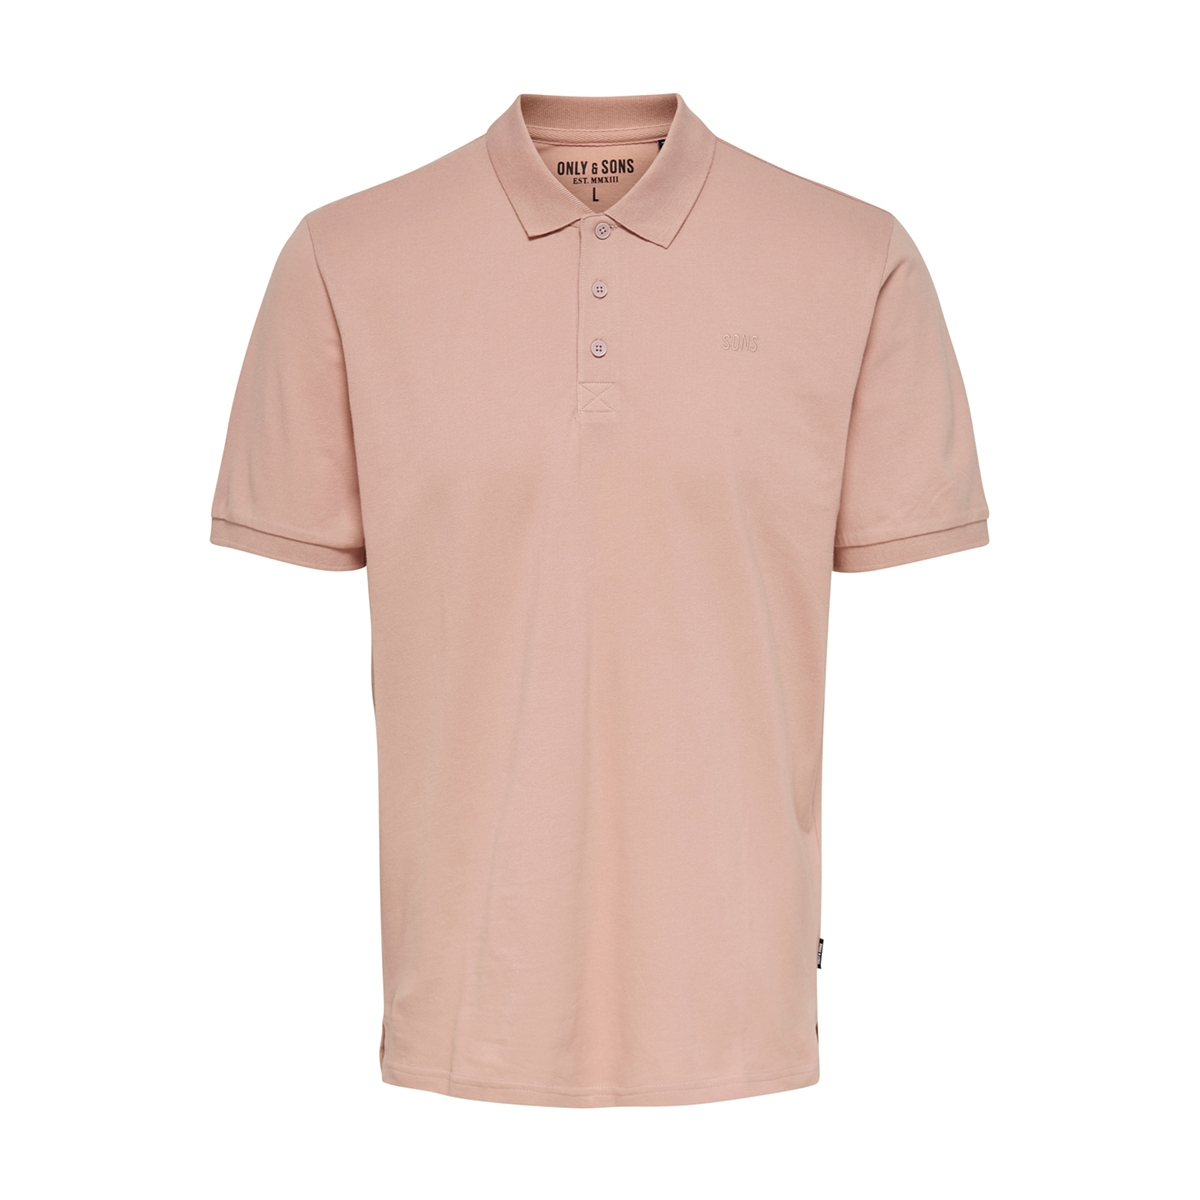 onsscott life pique polo noos 22013117 only & sons polo misty rose